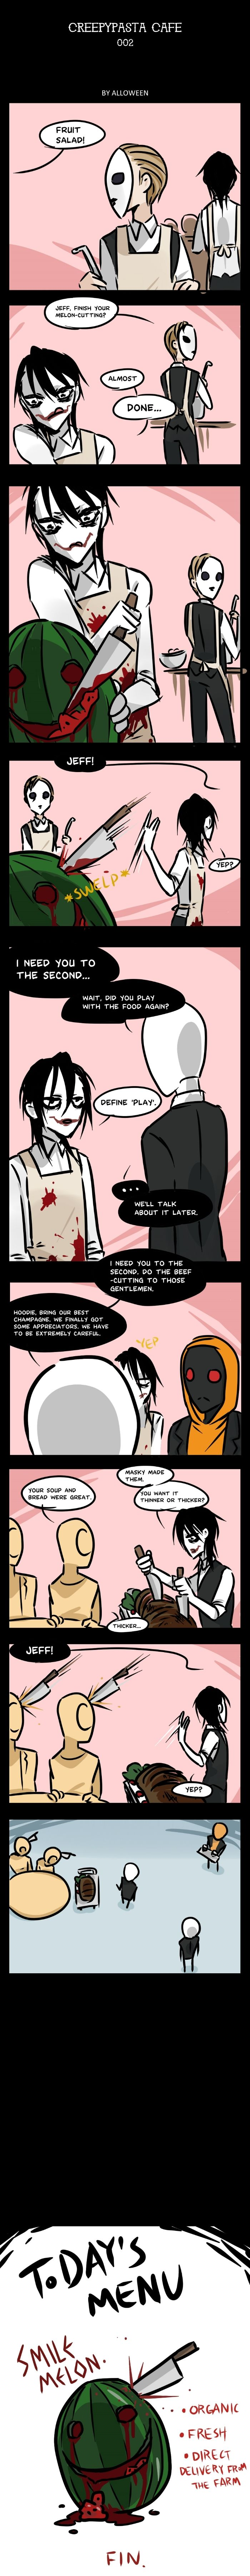 """Creepypasta Cafe 002 by Alloween 